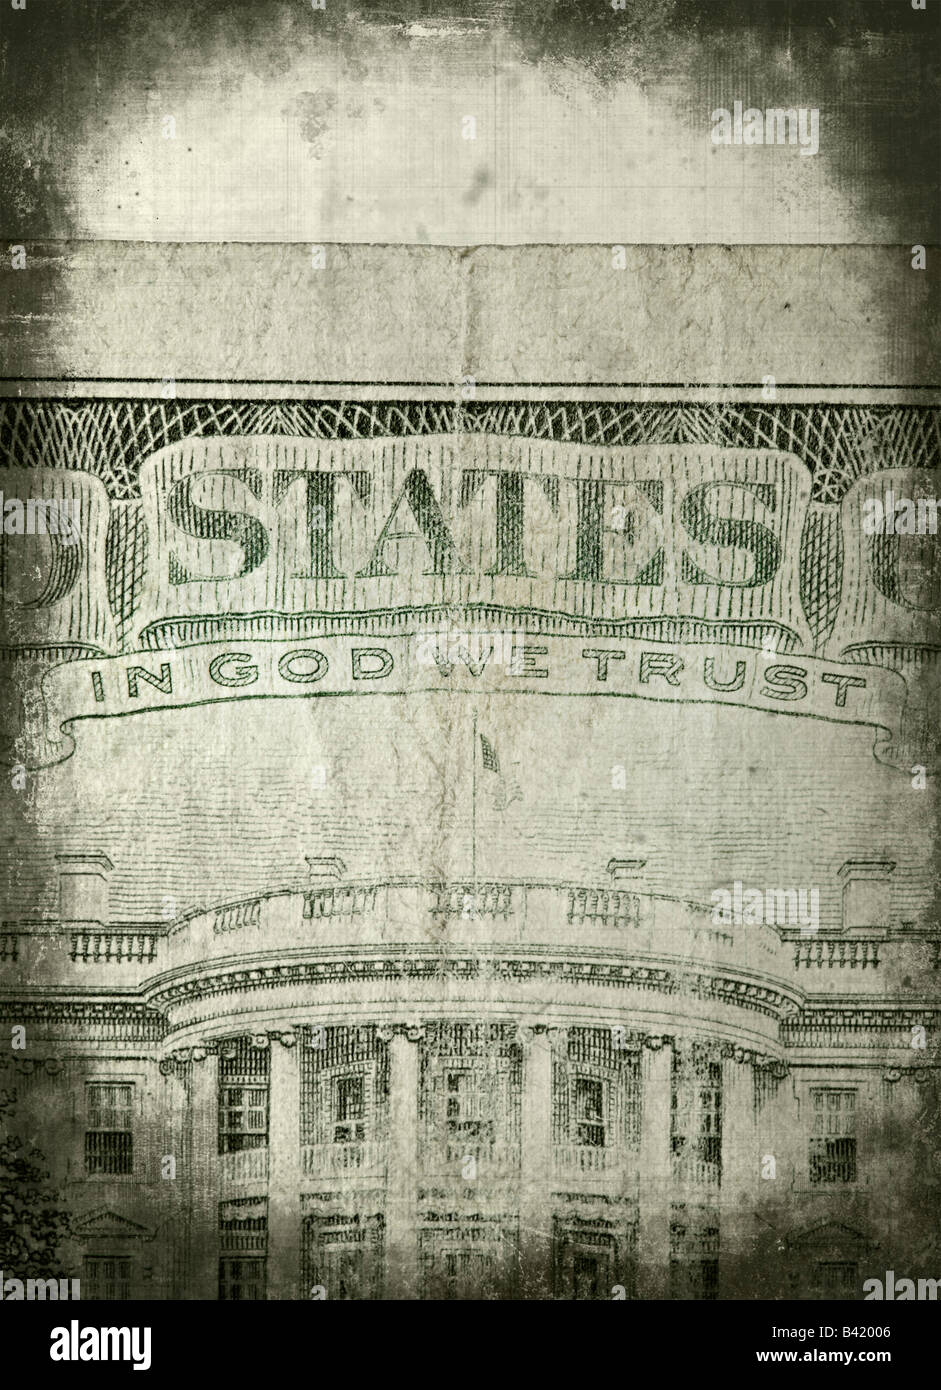 In God We Trust - detail of U S Dollar bill - Stock Image